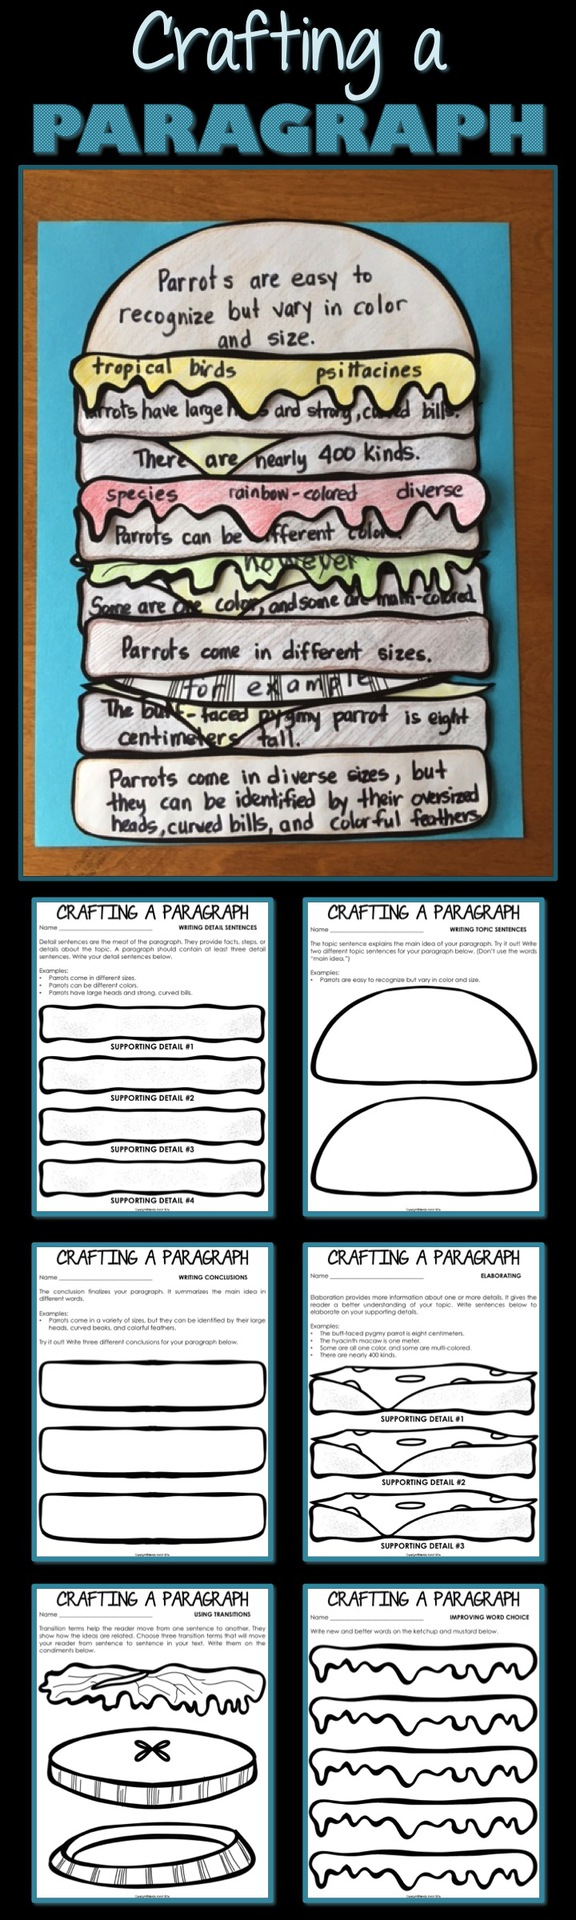 Use burger parts to craft a better paragraph. Kids in third grade, fourth grade, and fifth grade will improve the writing process.